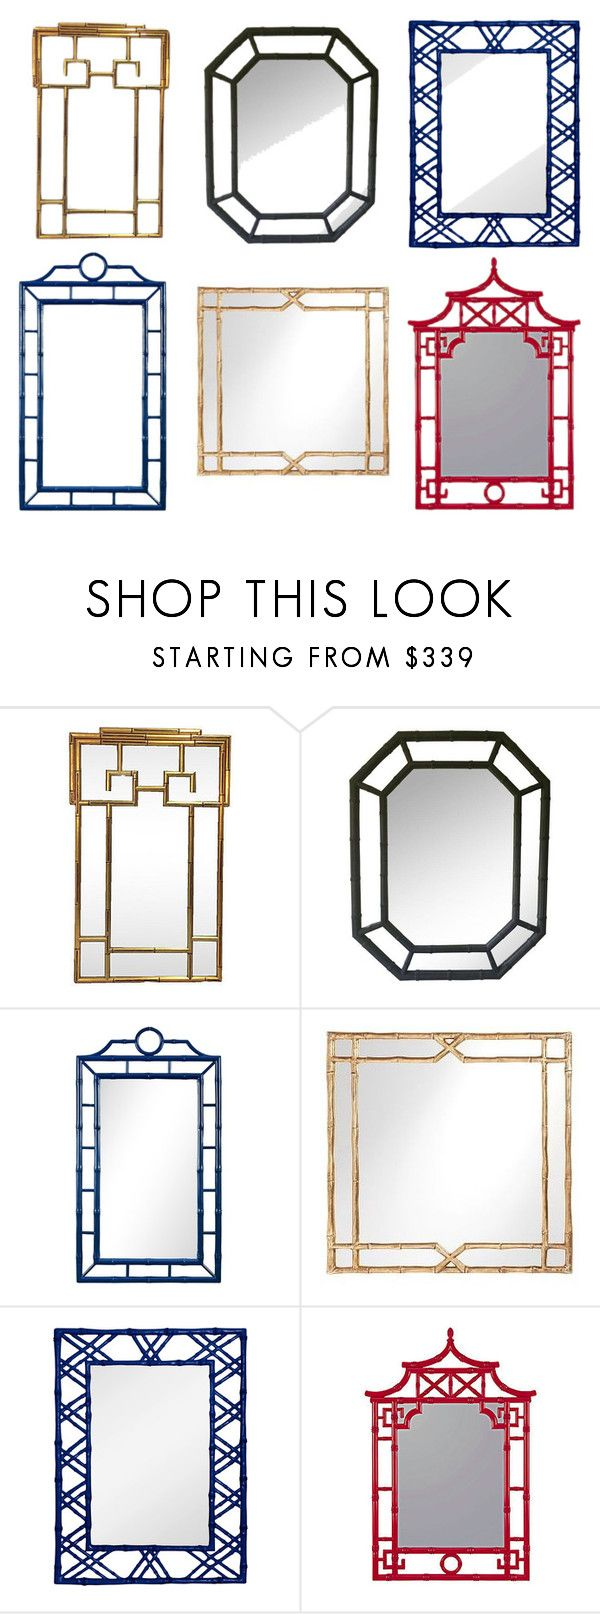 """""""faux bamboo mirror"""" by aesthetically-inclined on Polyvore featuring interior, interiors, interior design, home, home decor, interior decorating, Bungalow 5 and Pottery Barn"""